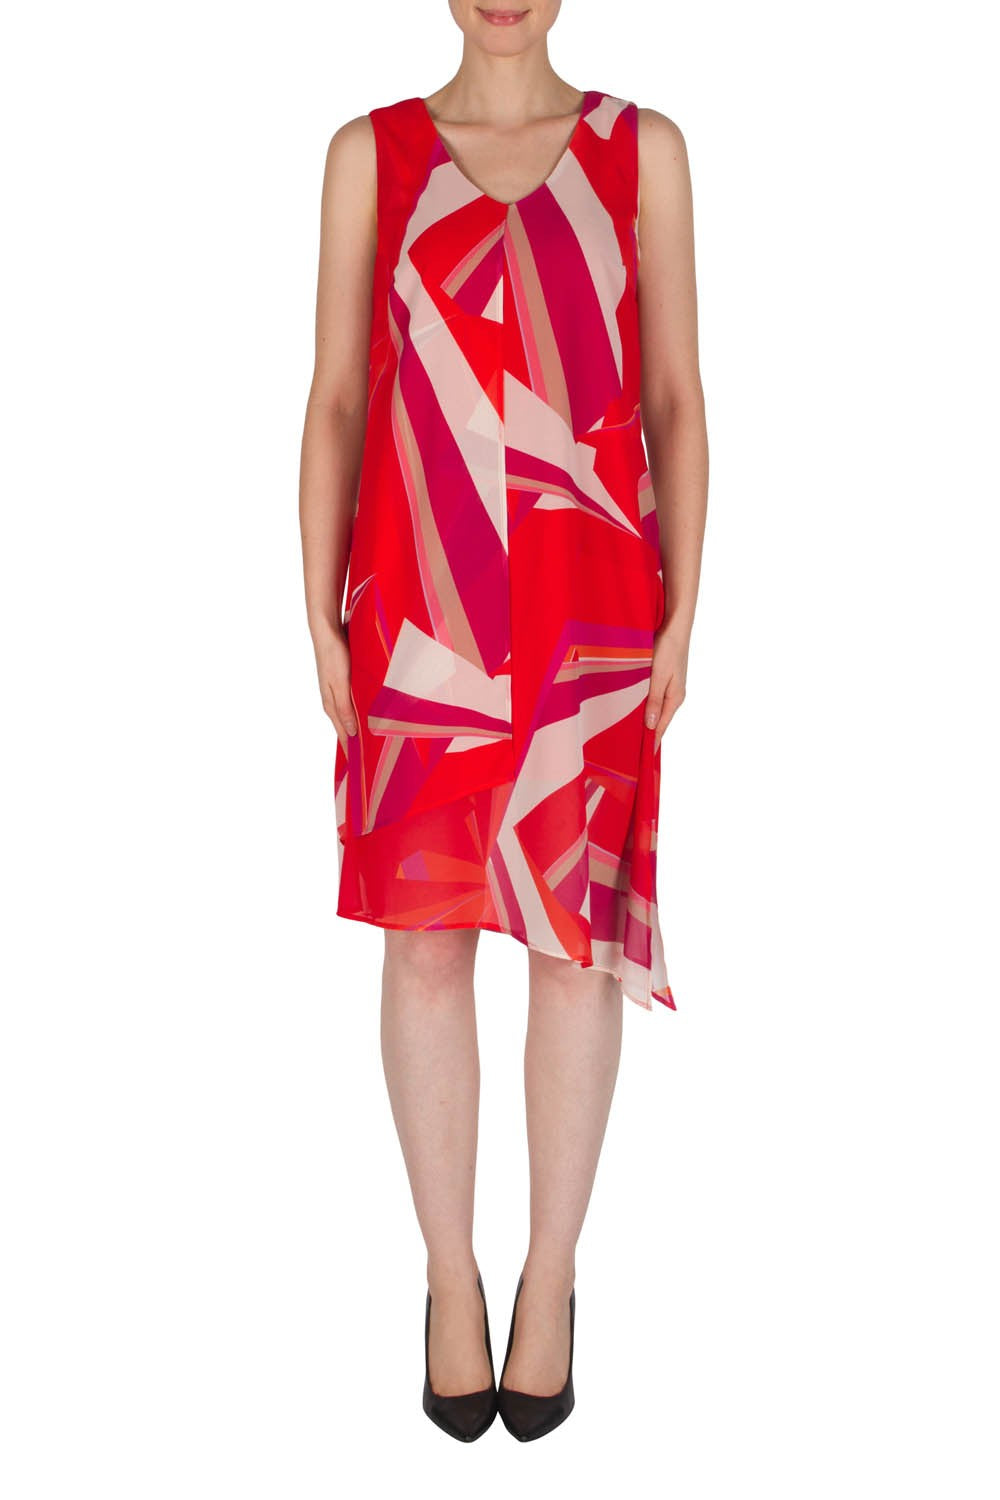 Flowing Graphic Print Dress w.Tie Up Back